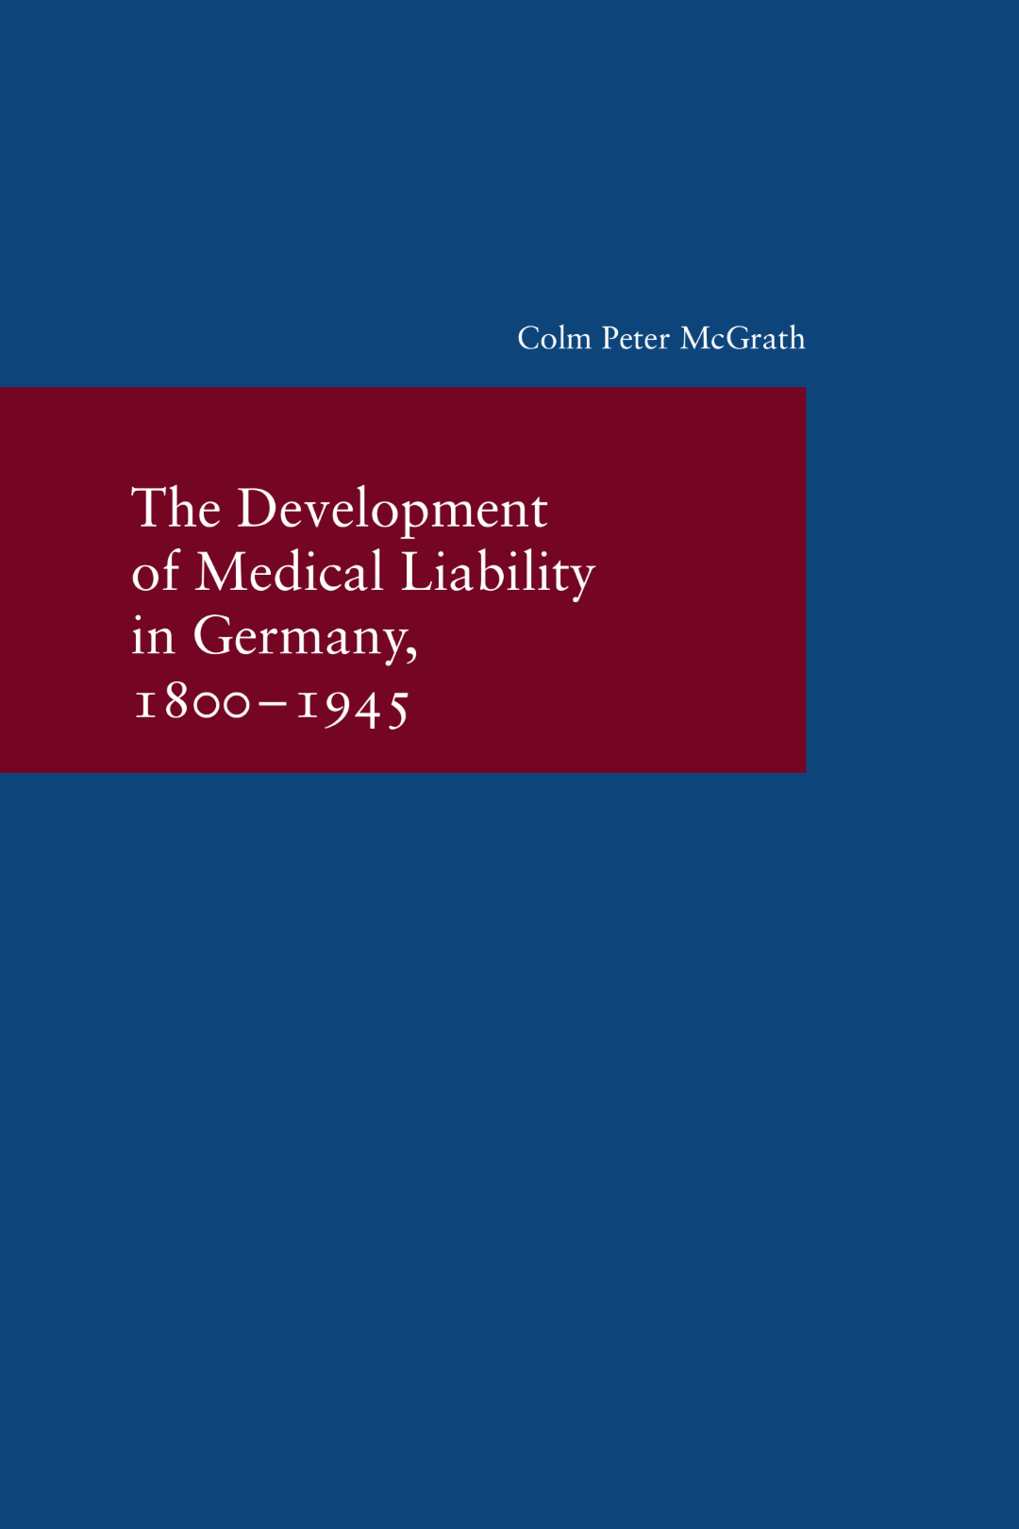 <p>The Development of Medical Liability in Germany, 1800–1945<br />Colm Peter McGrath</p> <p>Studien zur europäischen Rechtsgeschichte 314</p>